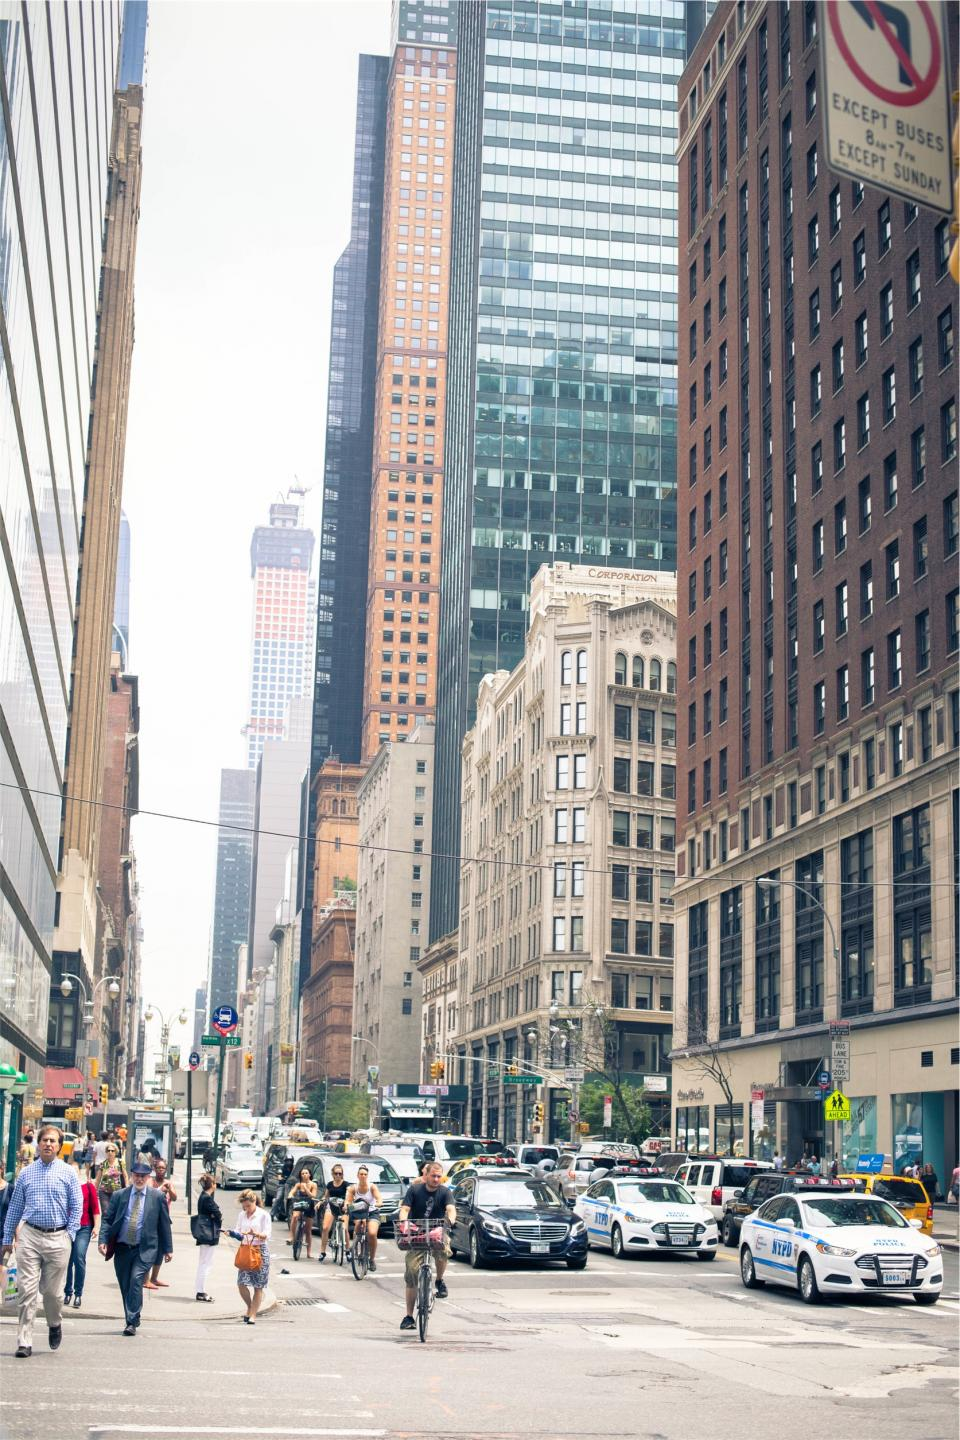 NYPD, NYC, New York, city, streets, roads, cars, people, pedestrians, crosswalk, buildings, urban, towers, traffic